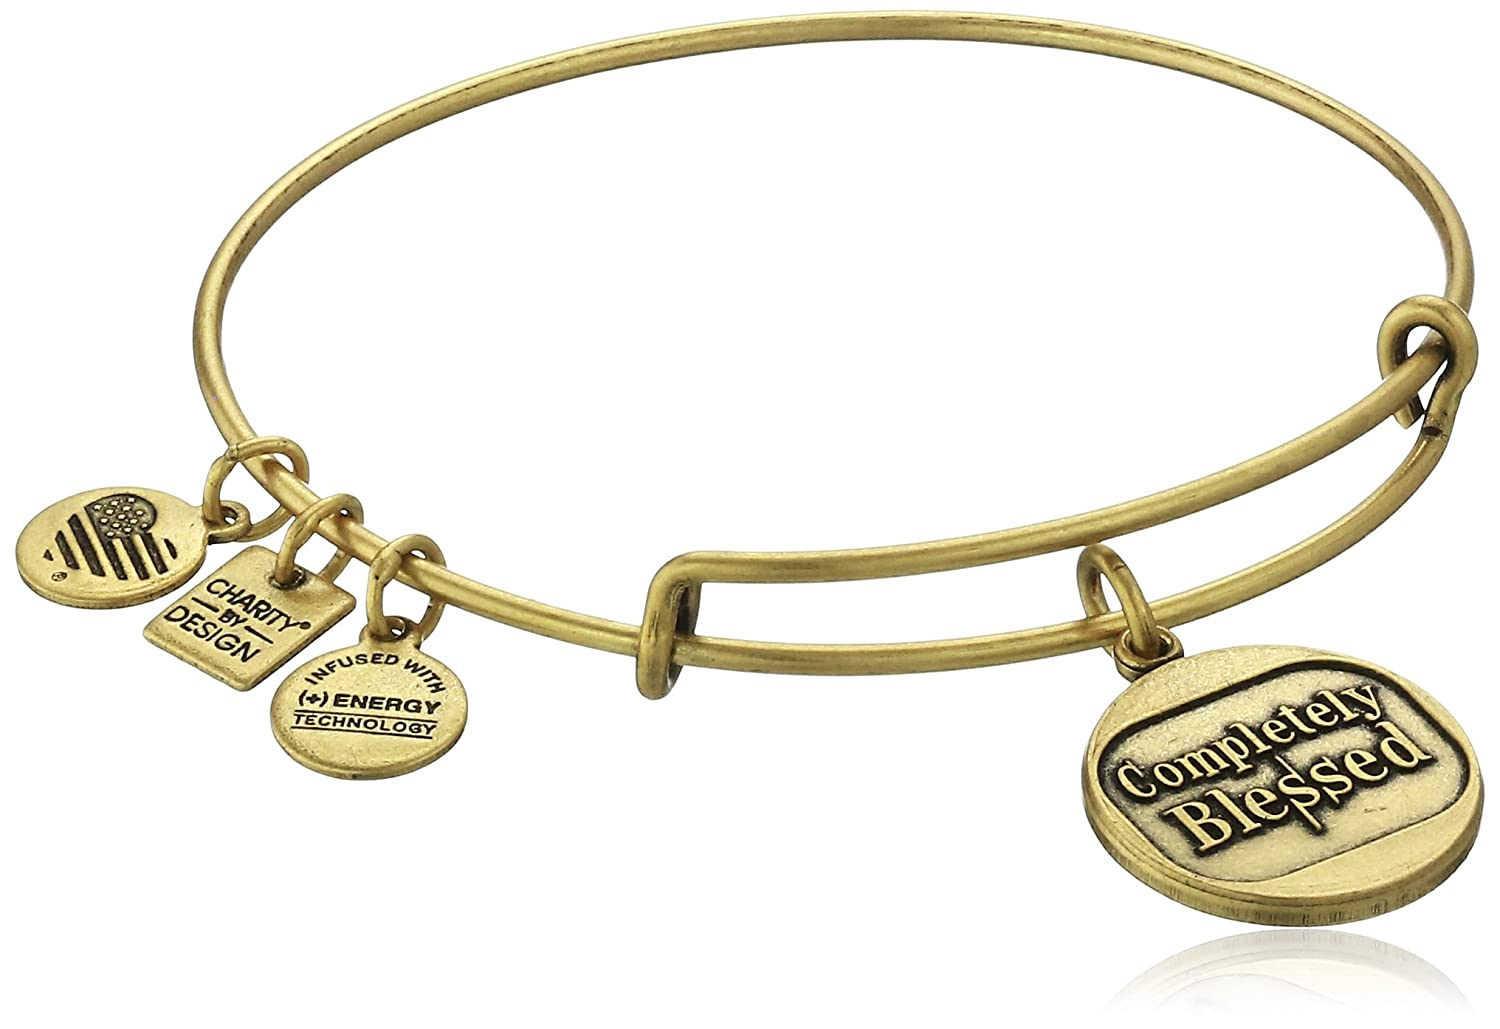 1864e2d080f Amazon.com  Alex and Ani Charity By Design Completely Blessed Rafaelian  Gold Bangle Bracelet  Jewelry